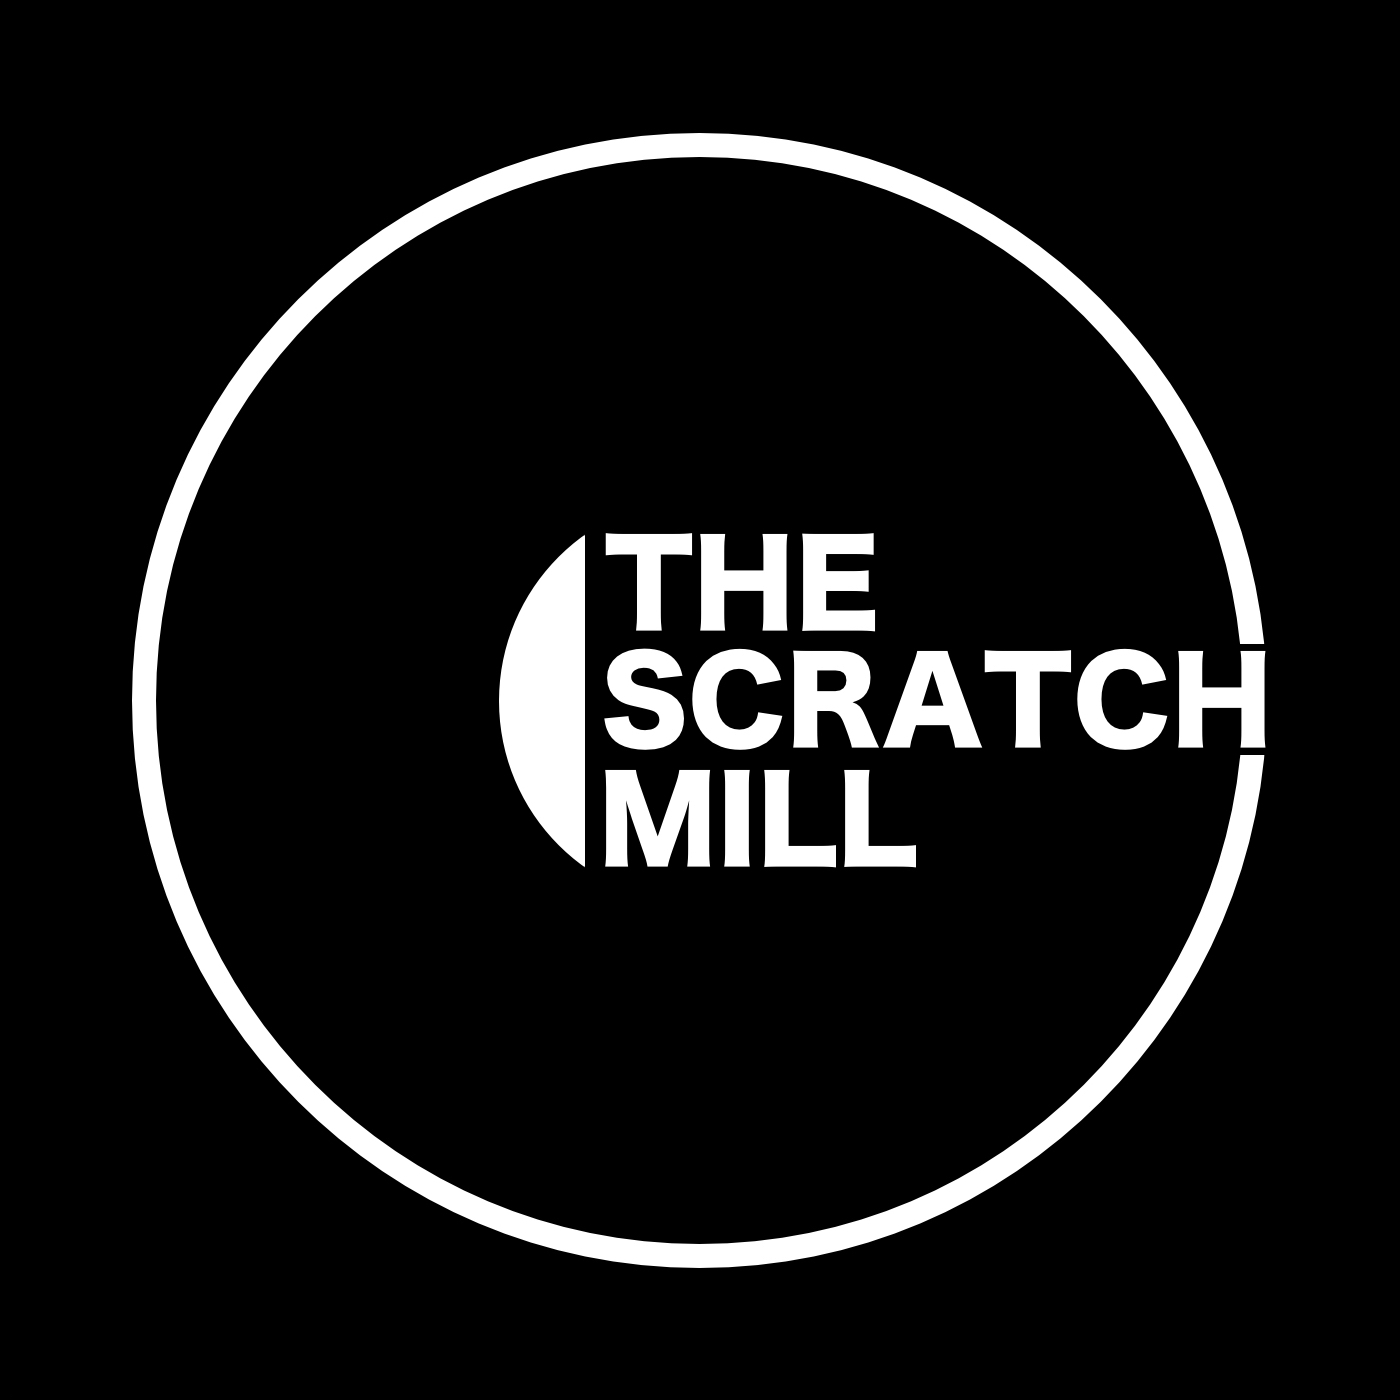 The Scratch Mill